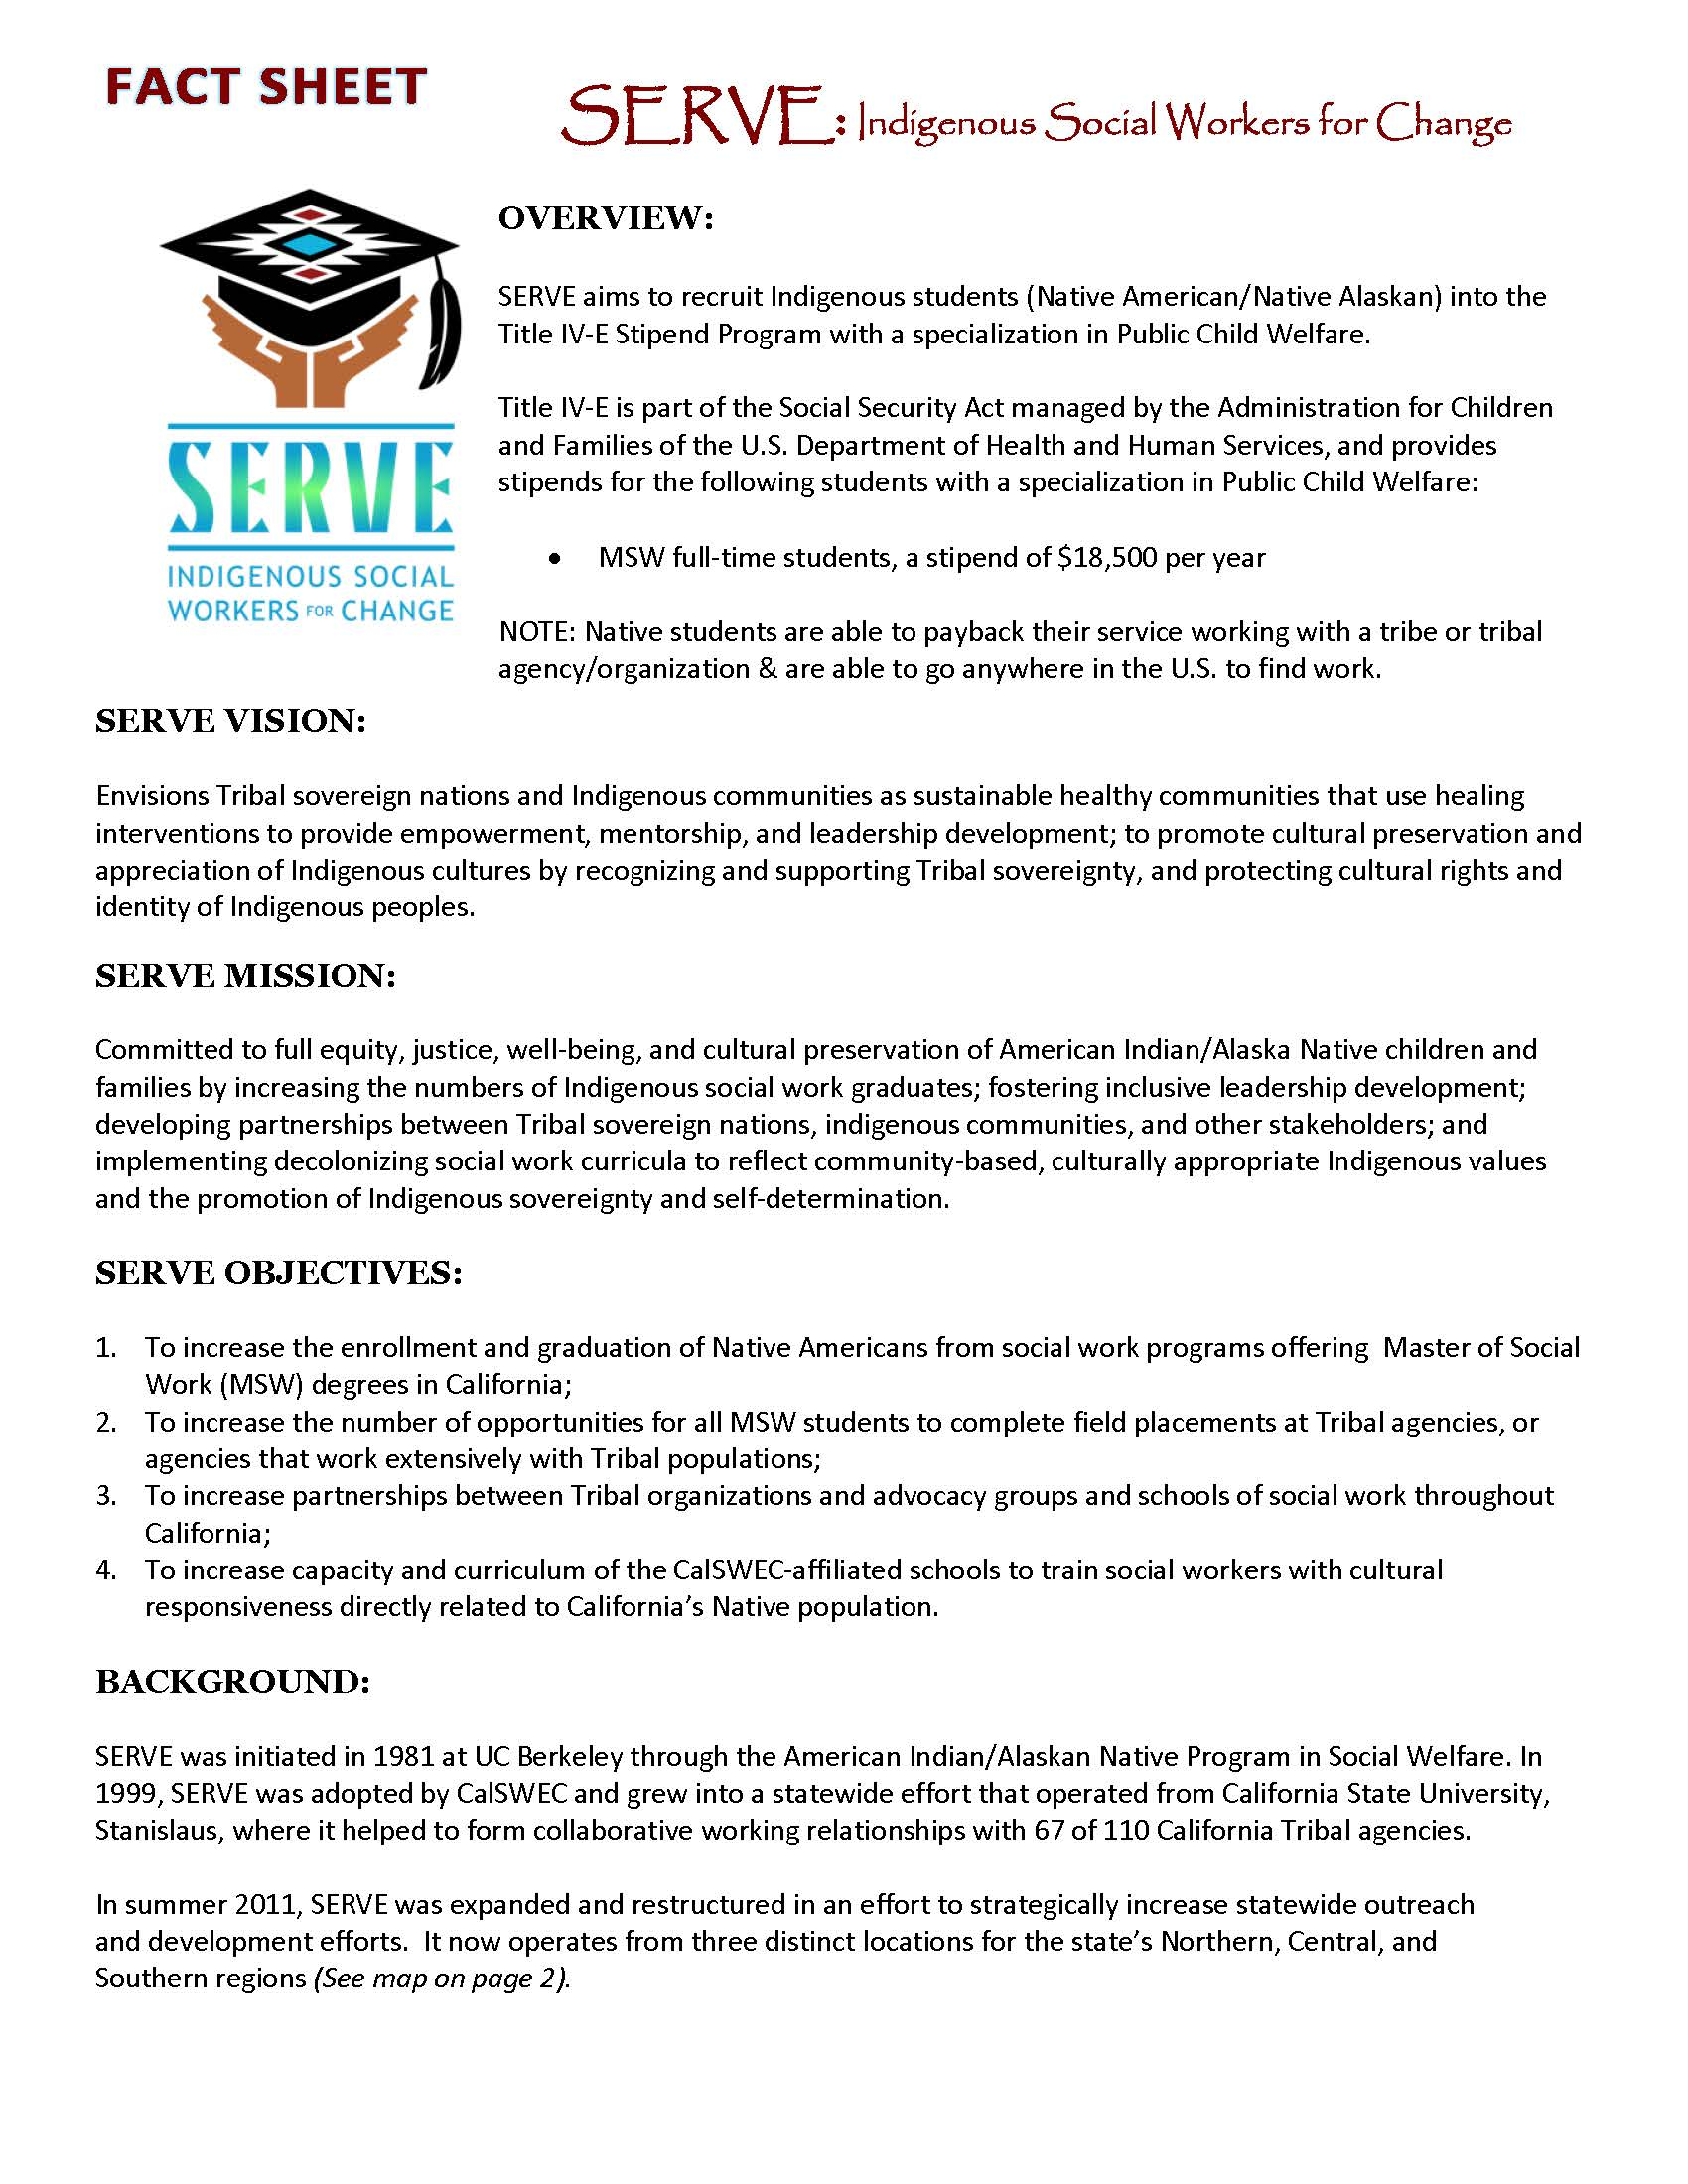 full time title iv e child welfare stipend program department of msw factsheet